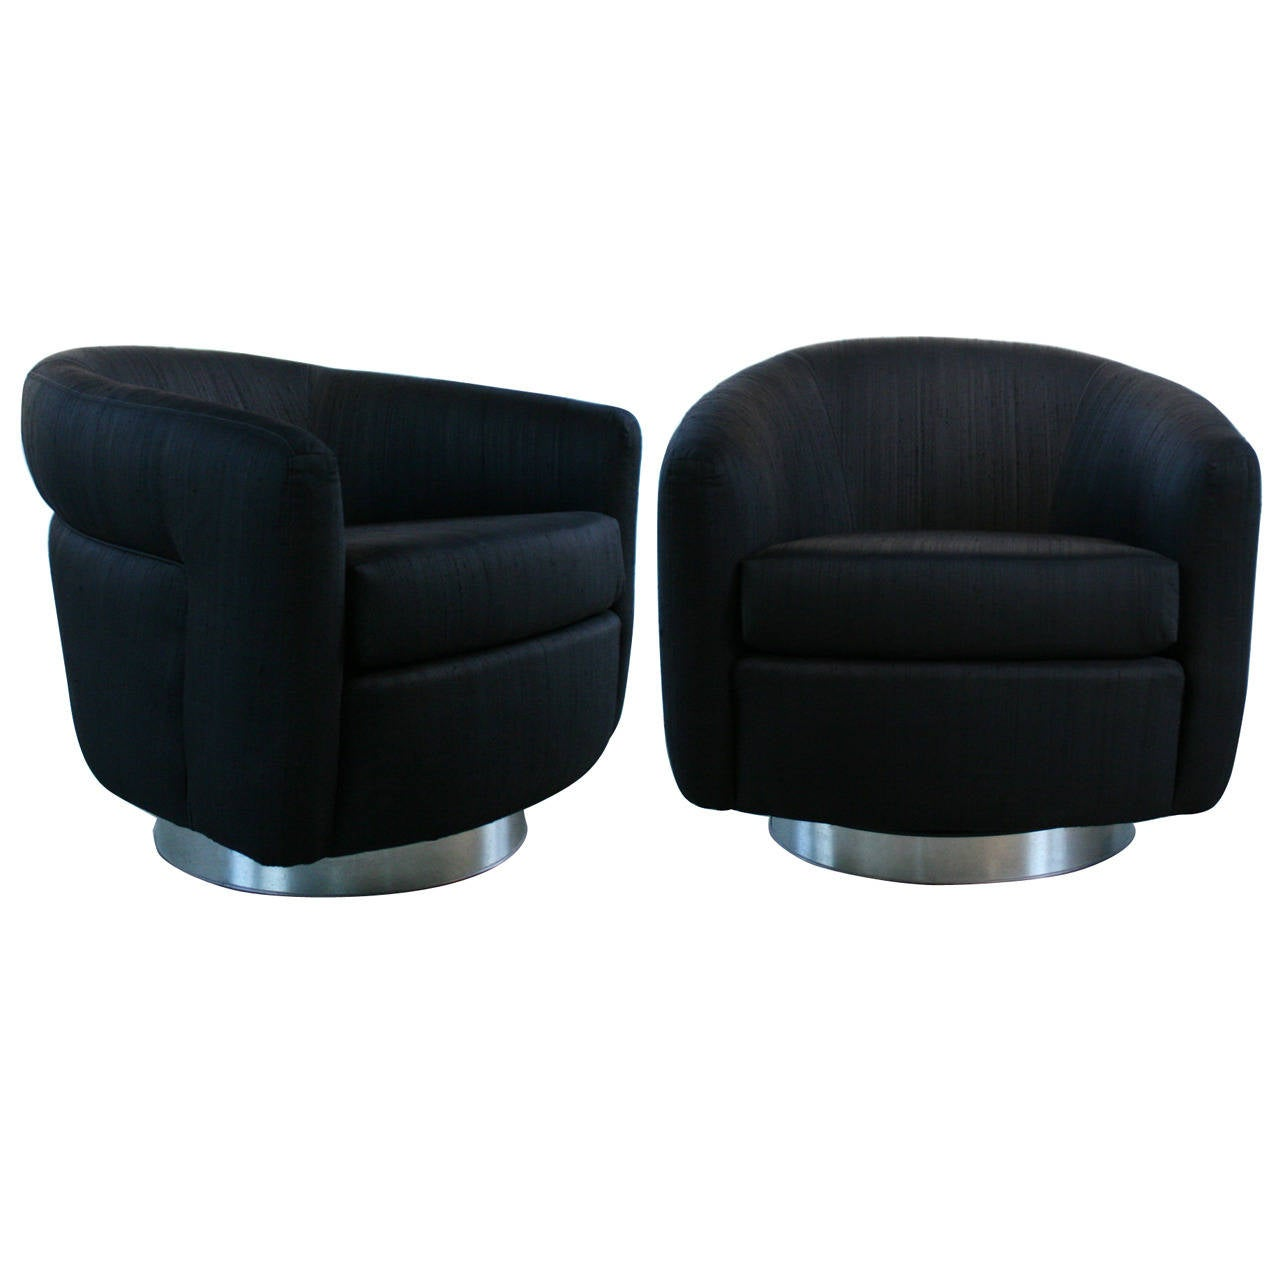 Pair Of Milo Baughman Black Swivel And Rocking Barrel